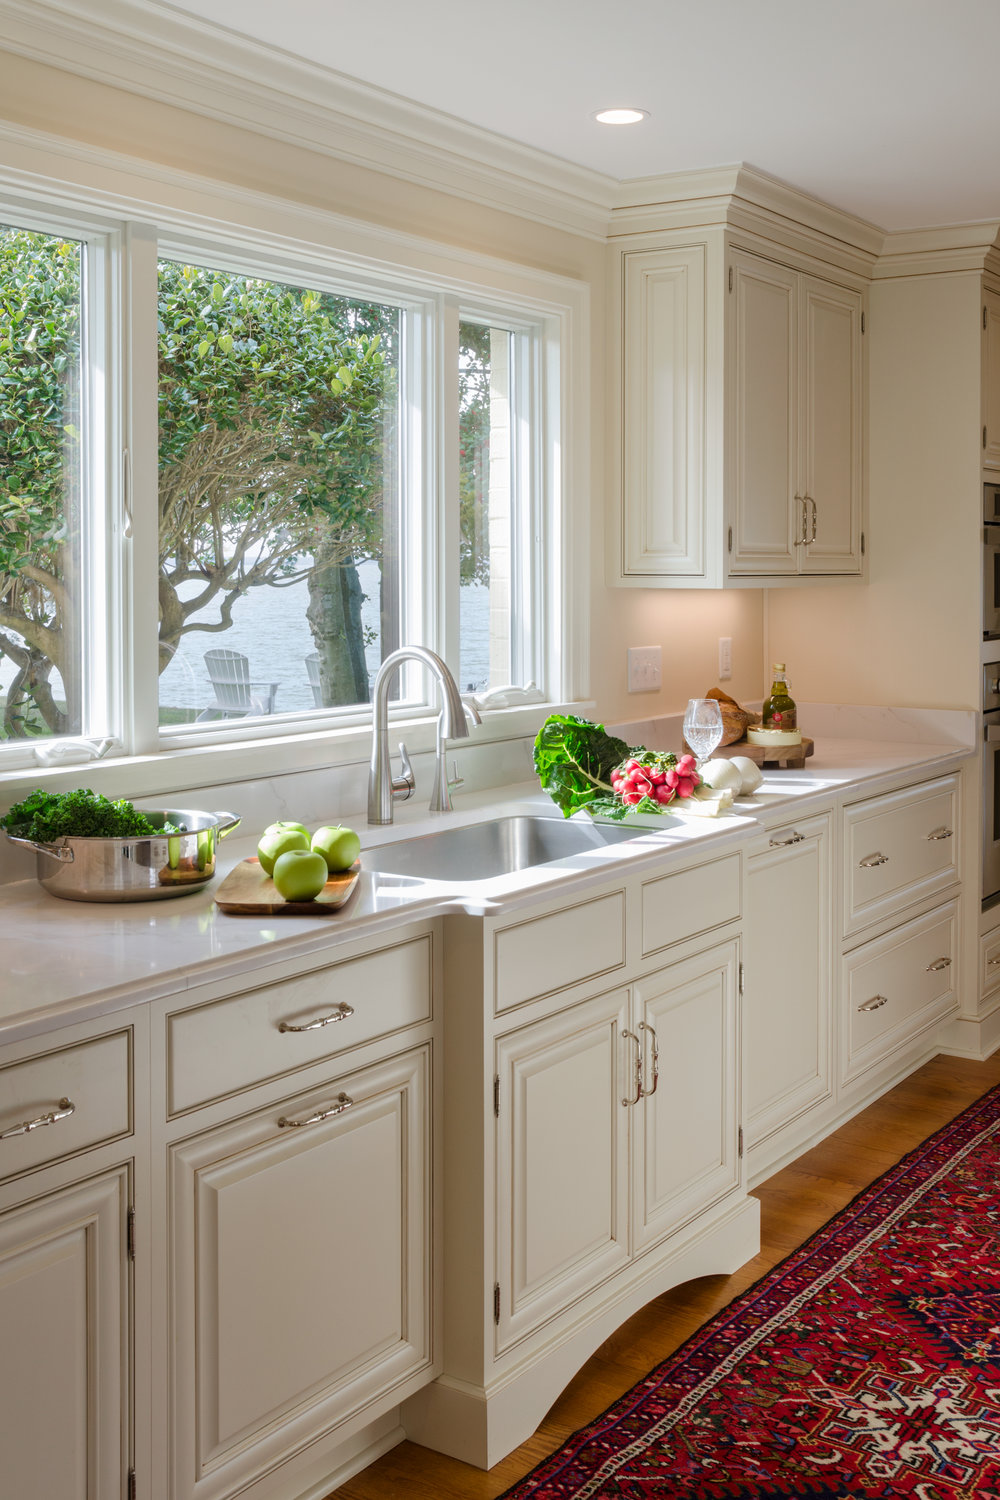 CKI-Whitestone-Kitchen-04-02012018.jpg